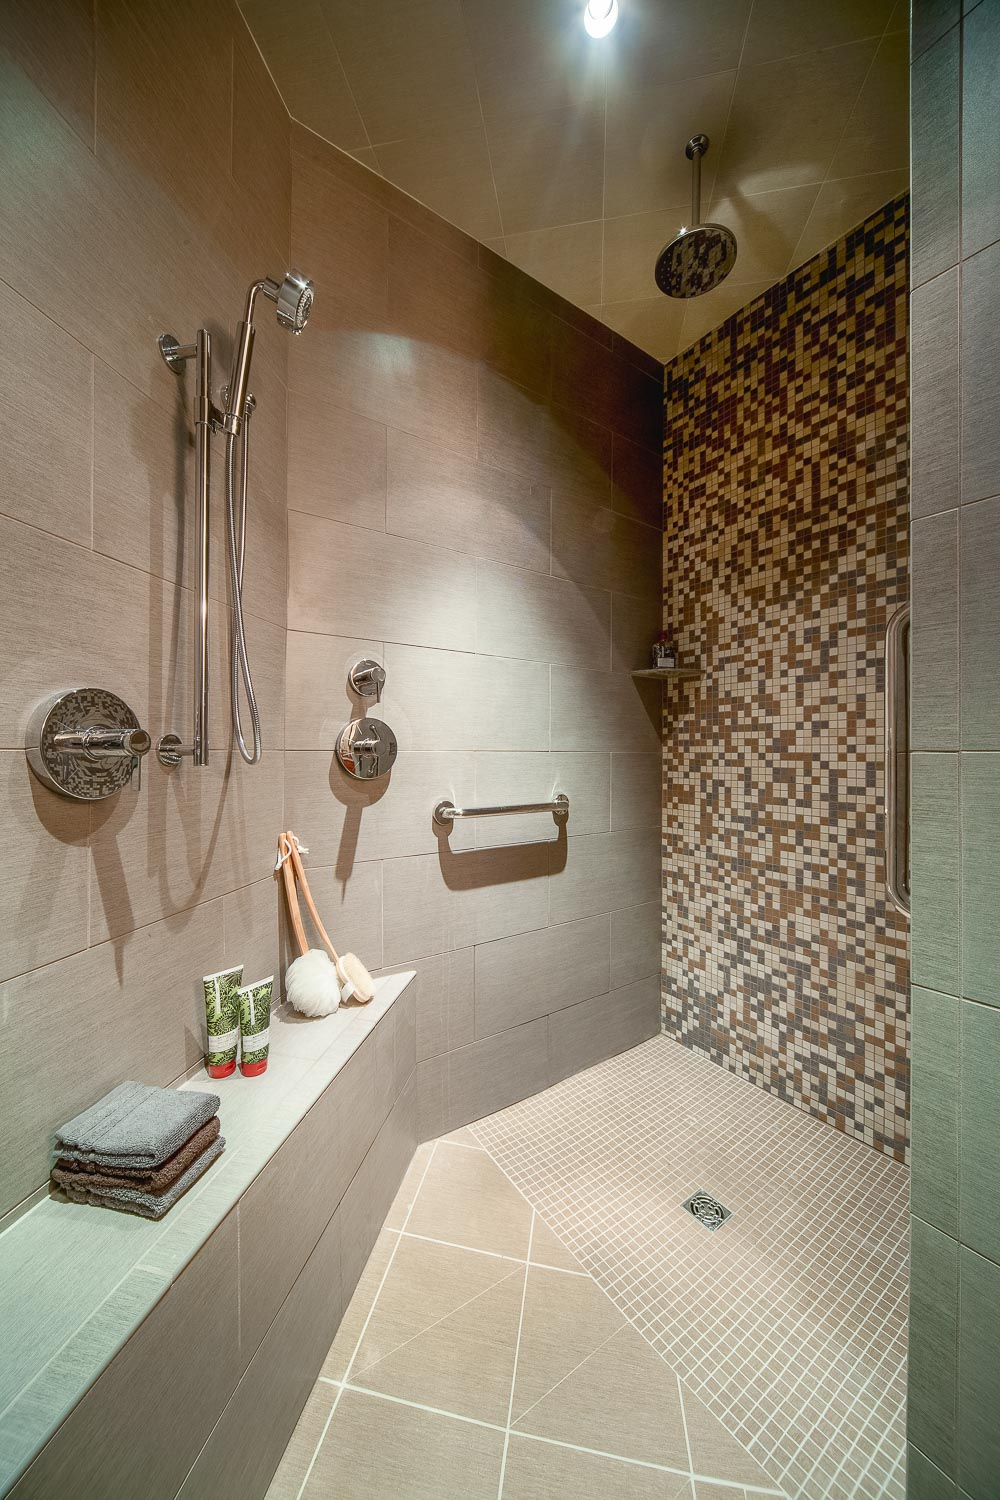 - This walk-in shower boasts a zero-threshold entry for aging-in-place and ADA accessibility. It has a rain shower head with hand shower and body sprays.